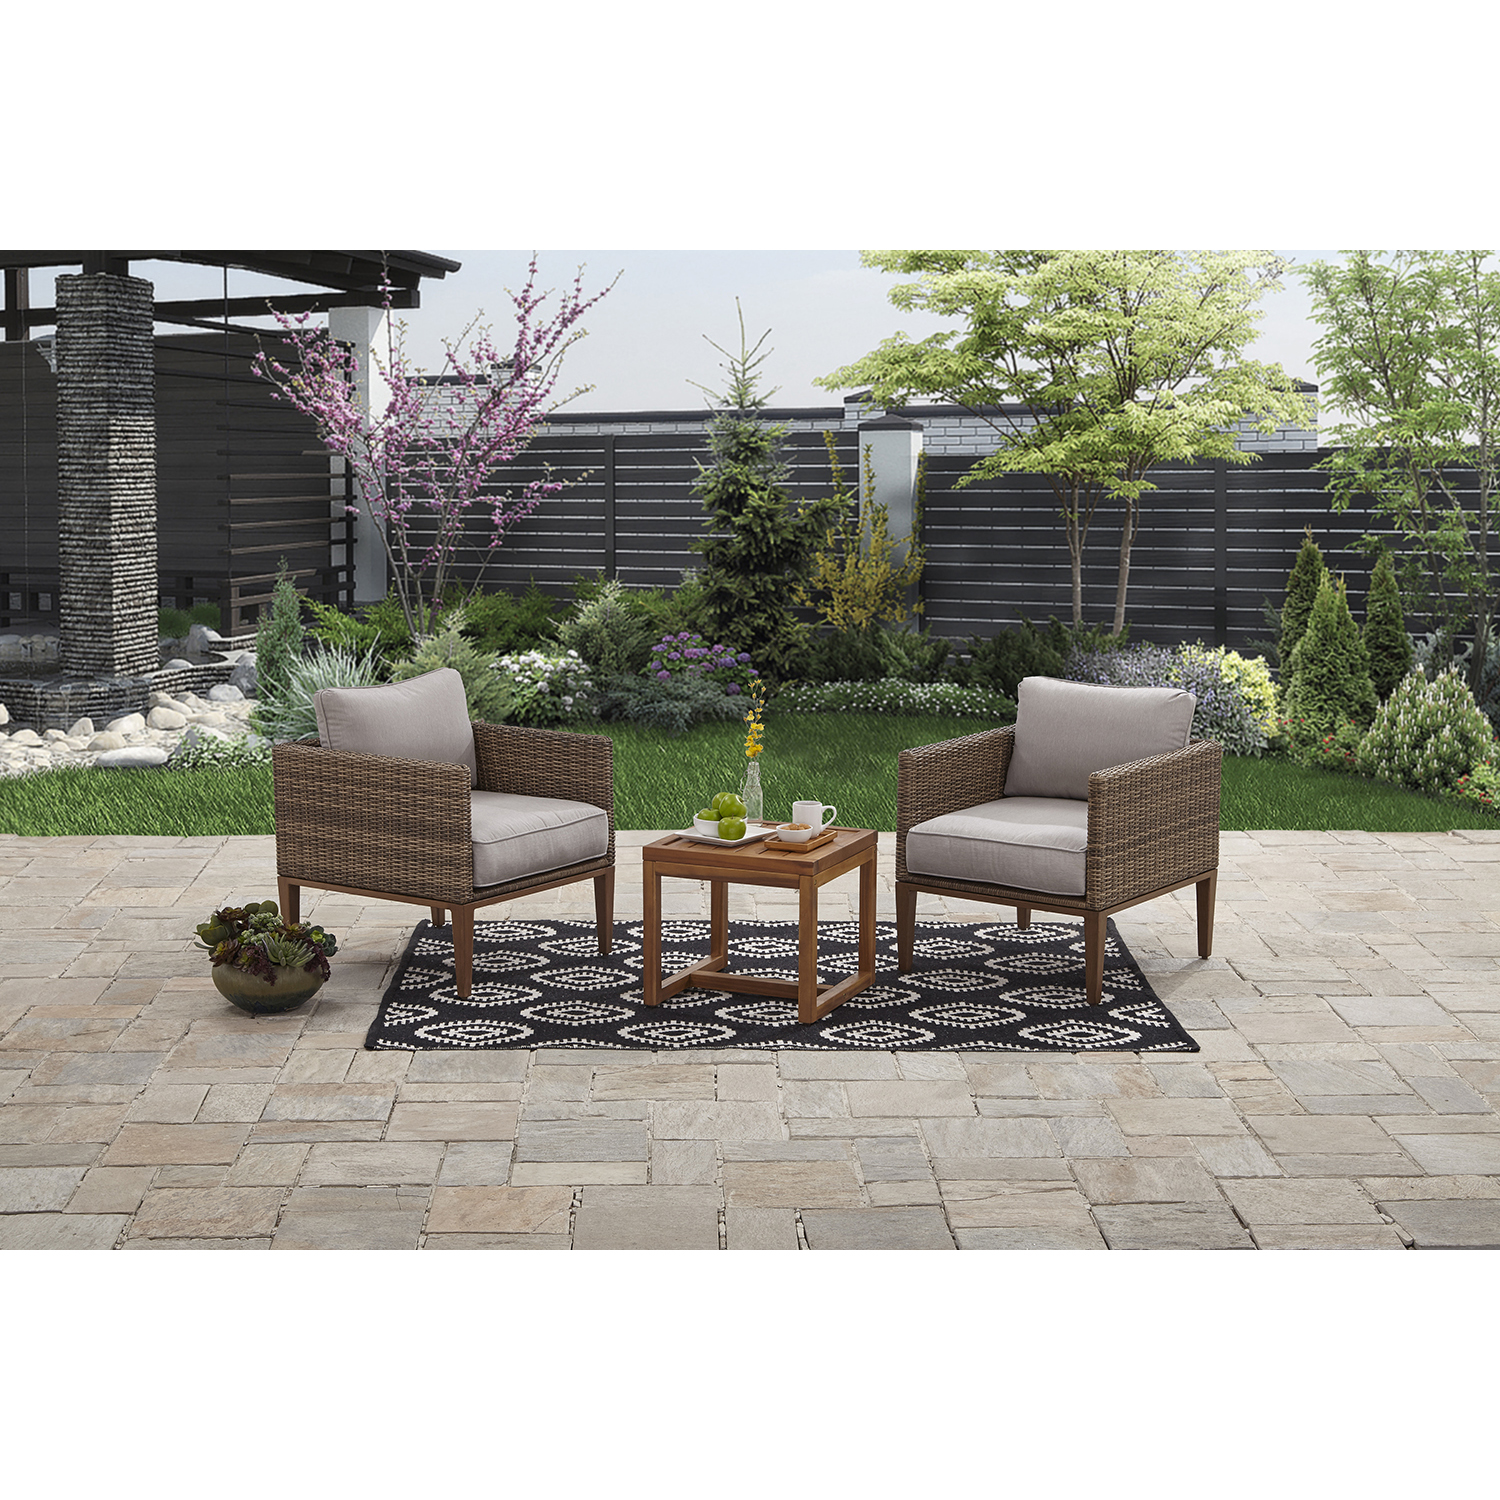 Waterproof Cover Furniture Set Garden Patio Cube Table Outdoor CoverTable